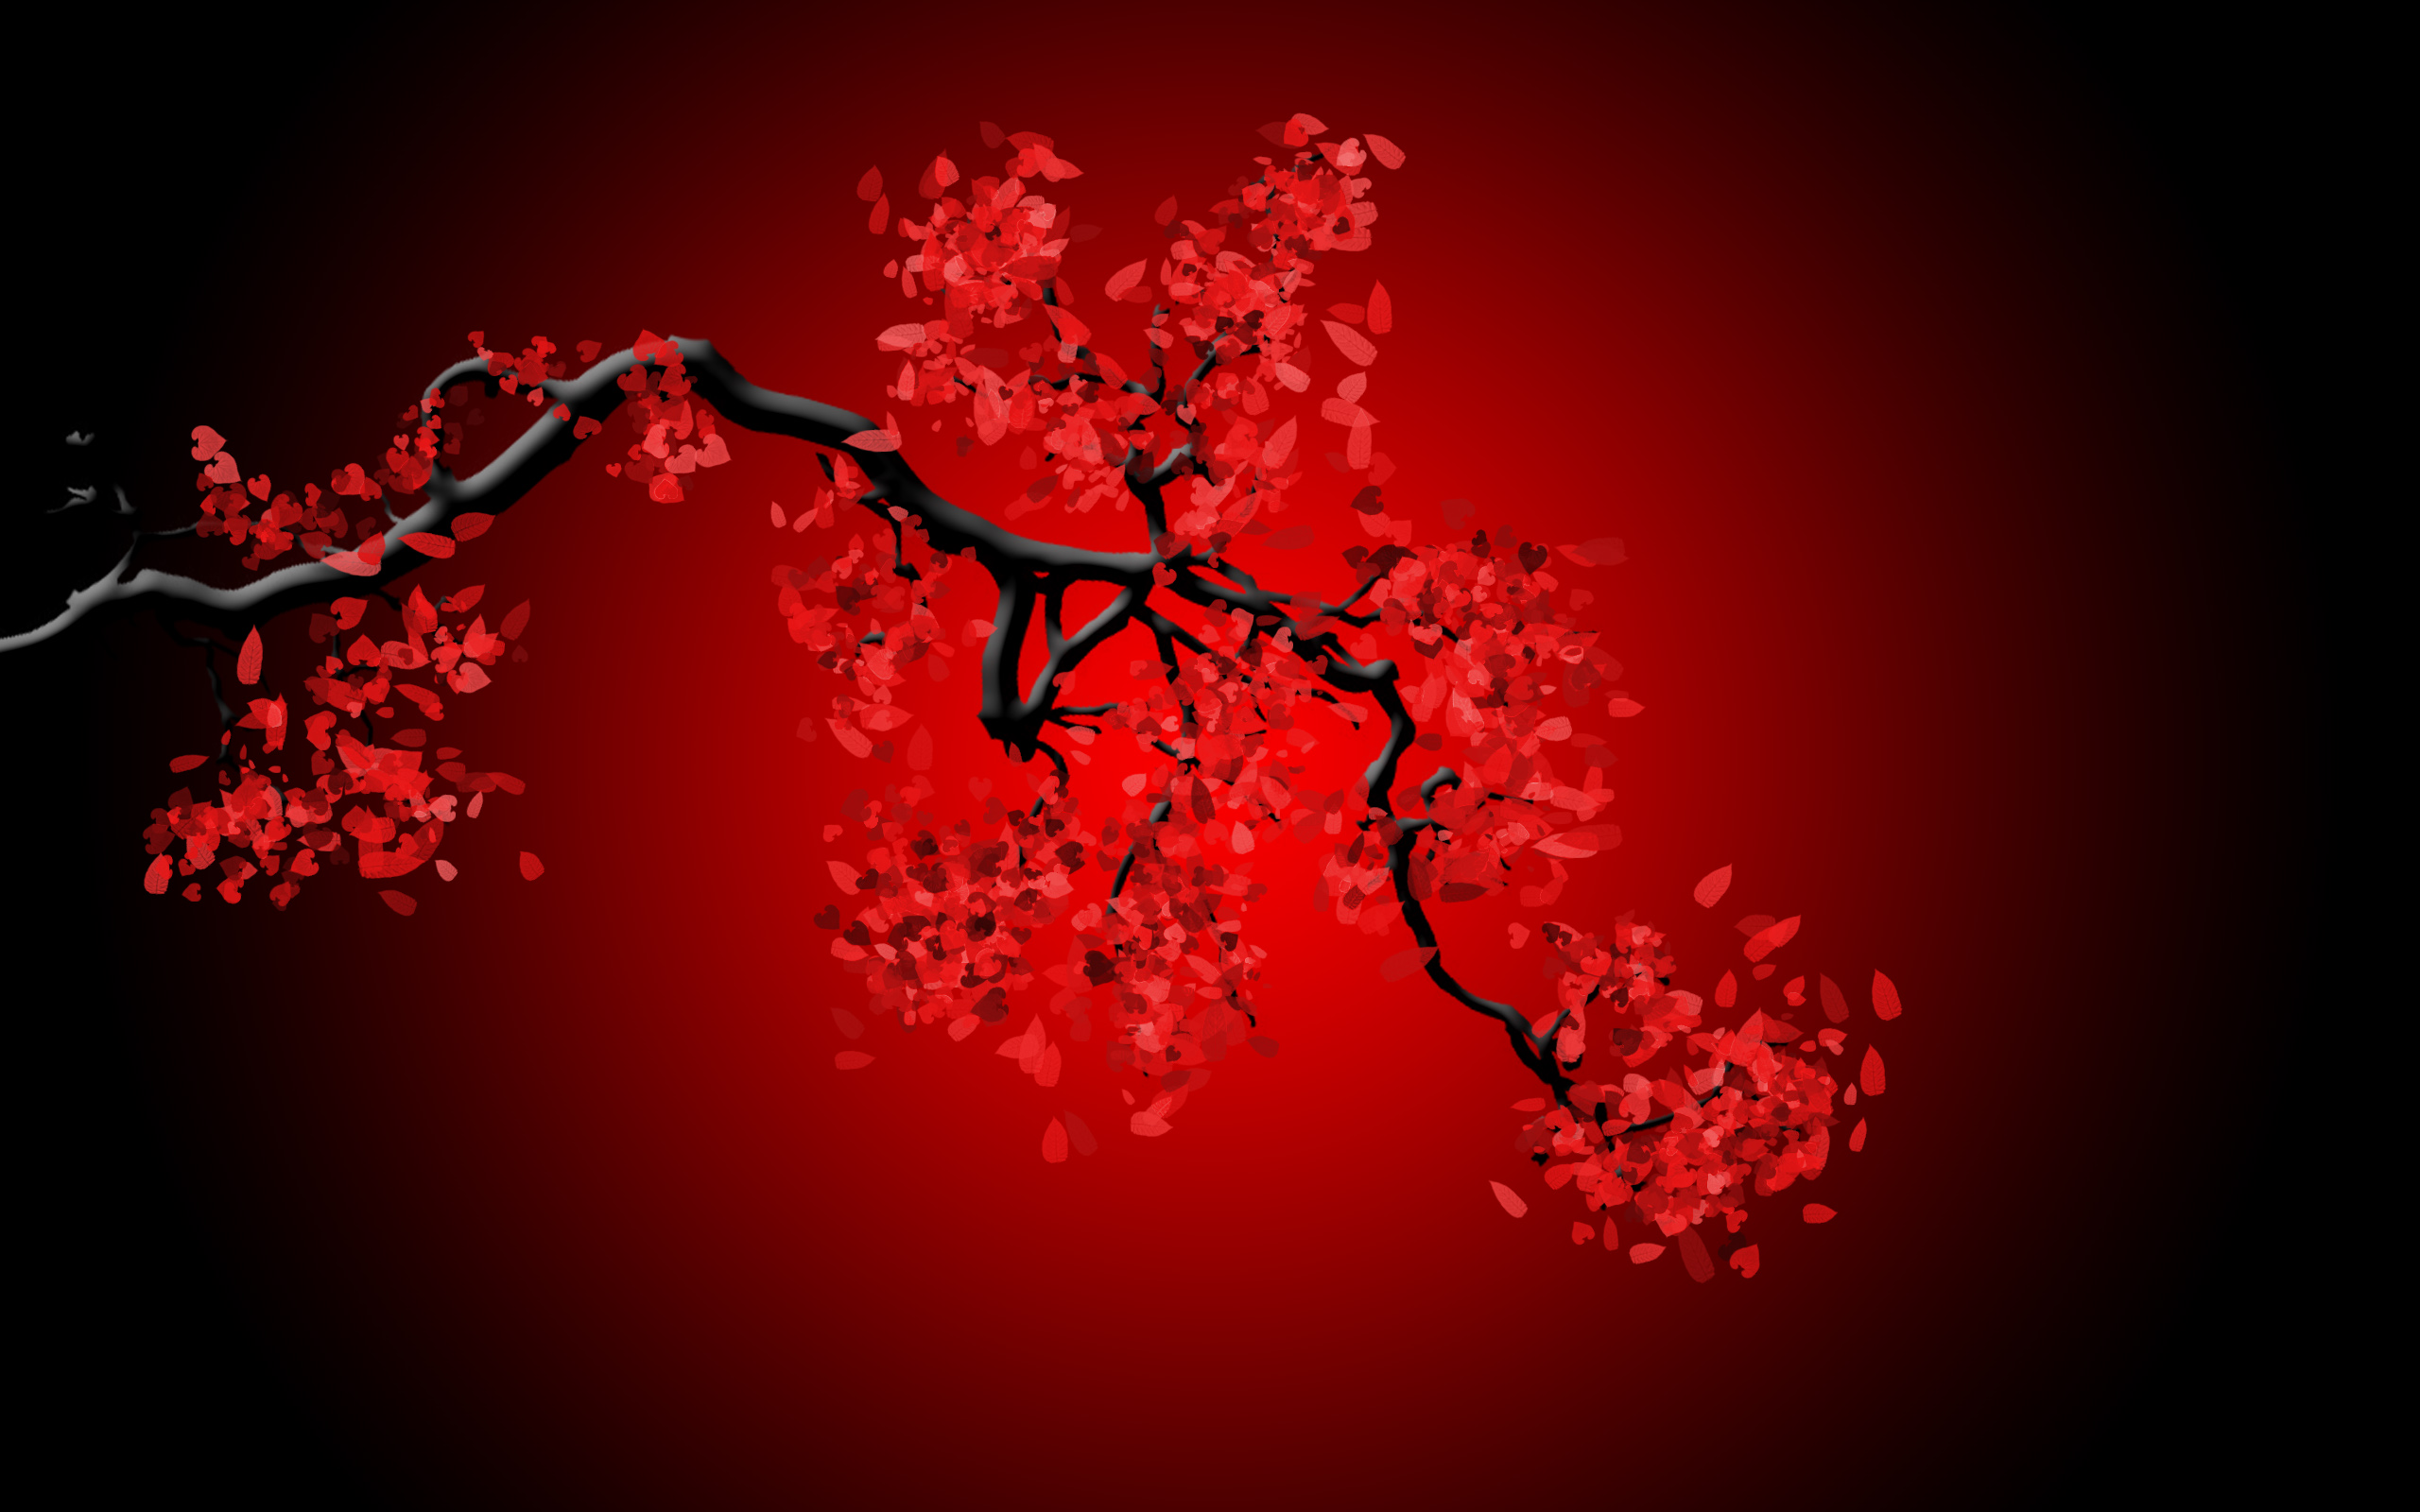 cool red wallpapers hd - photo #49